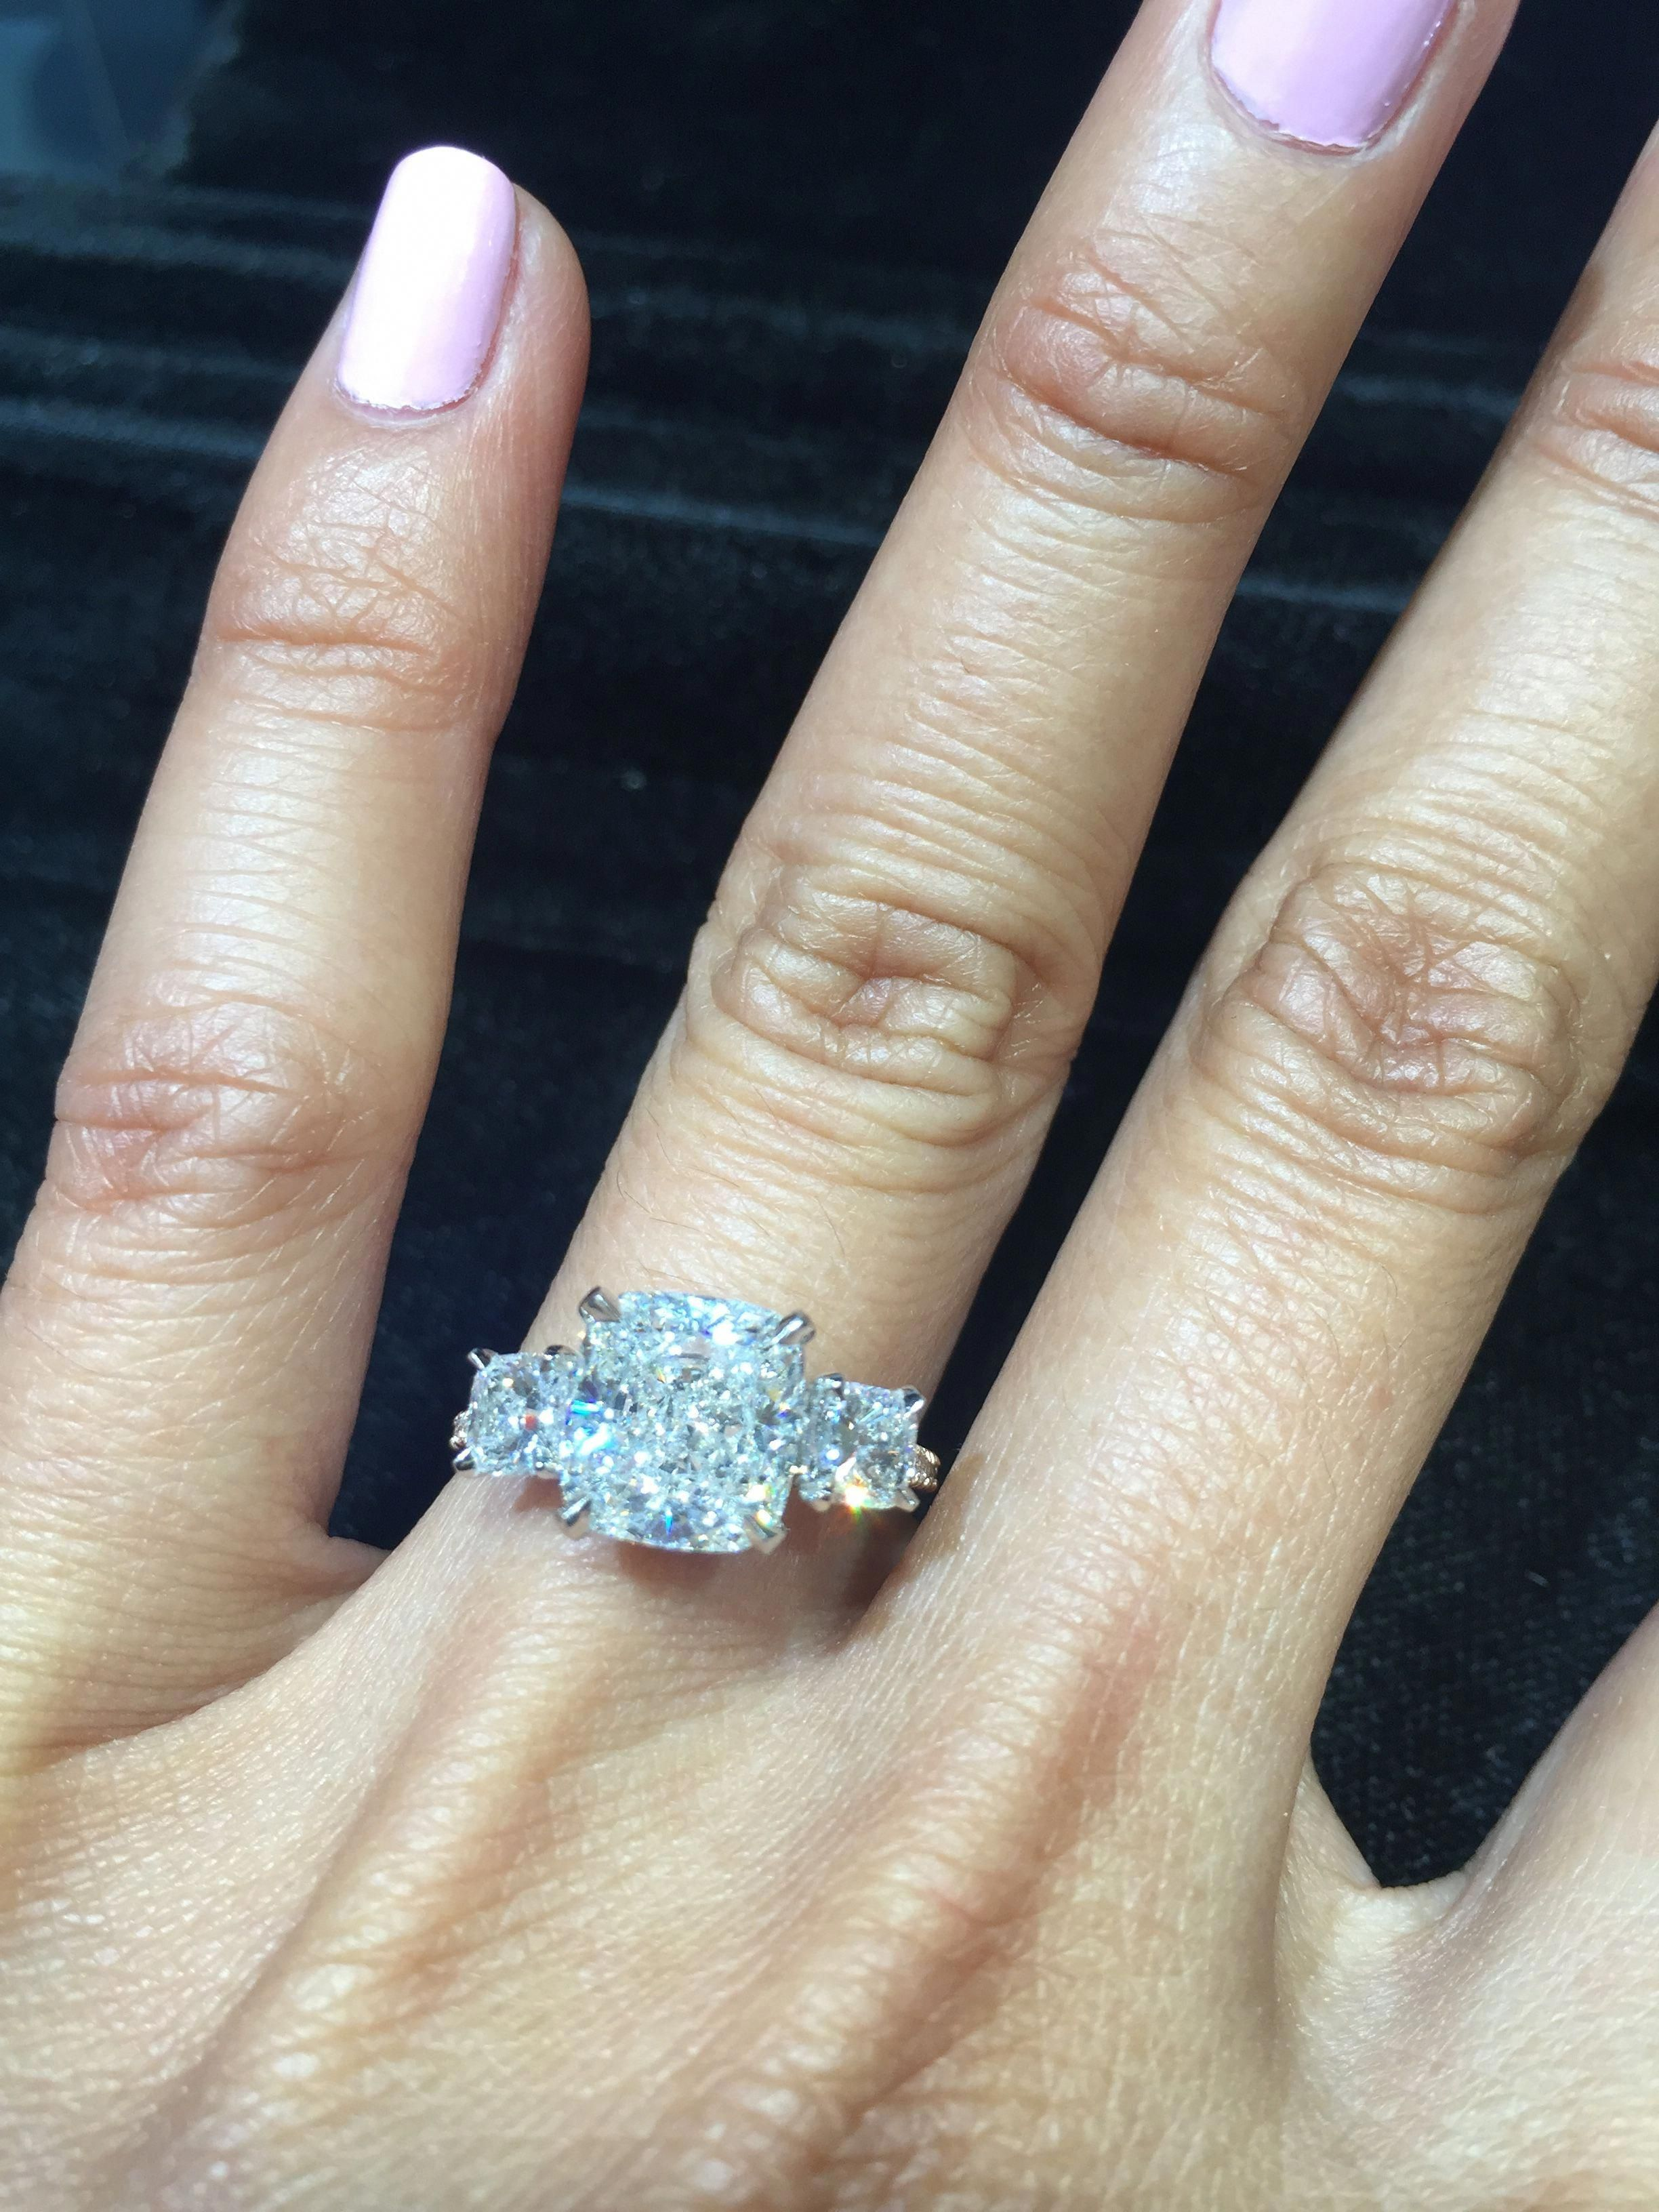 Matching Wedding Rings Right Hand Rings A Engagement Ring 20190322 Wholesale Engagement Rings Vintage Engagement Rings Classic Engagement Rings